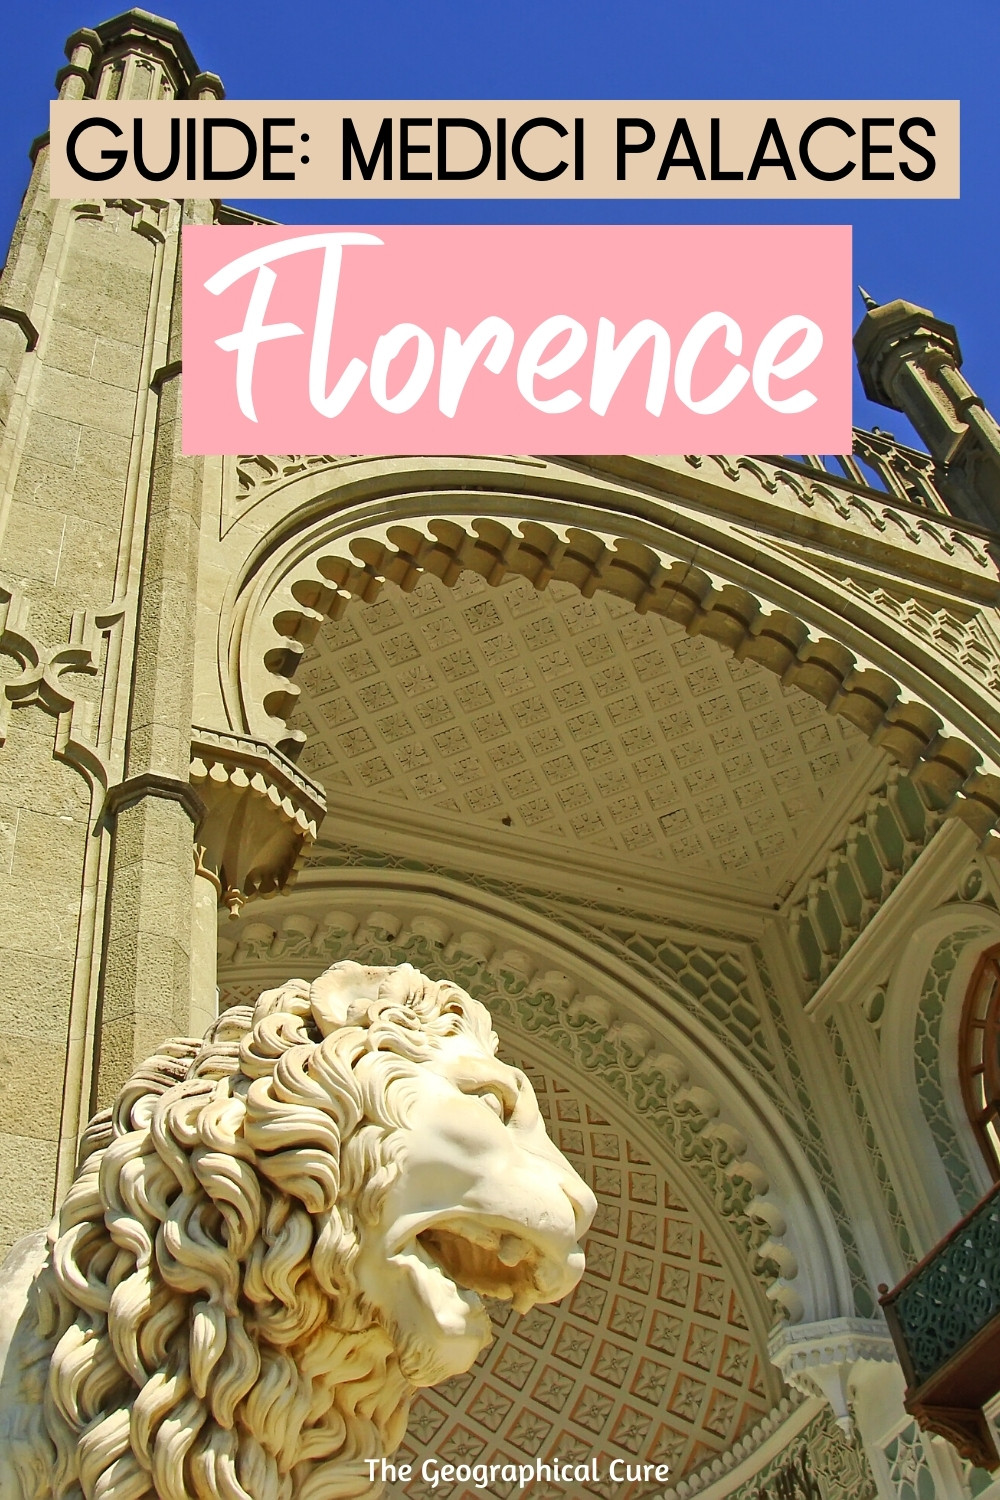 Ultimate Guide to the Medici Palaces in Florence Italy